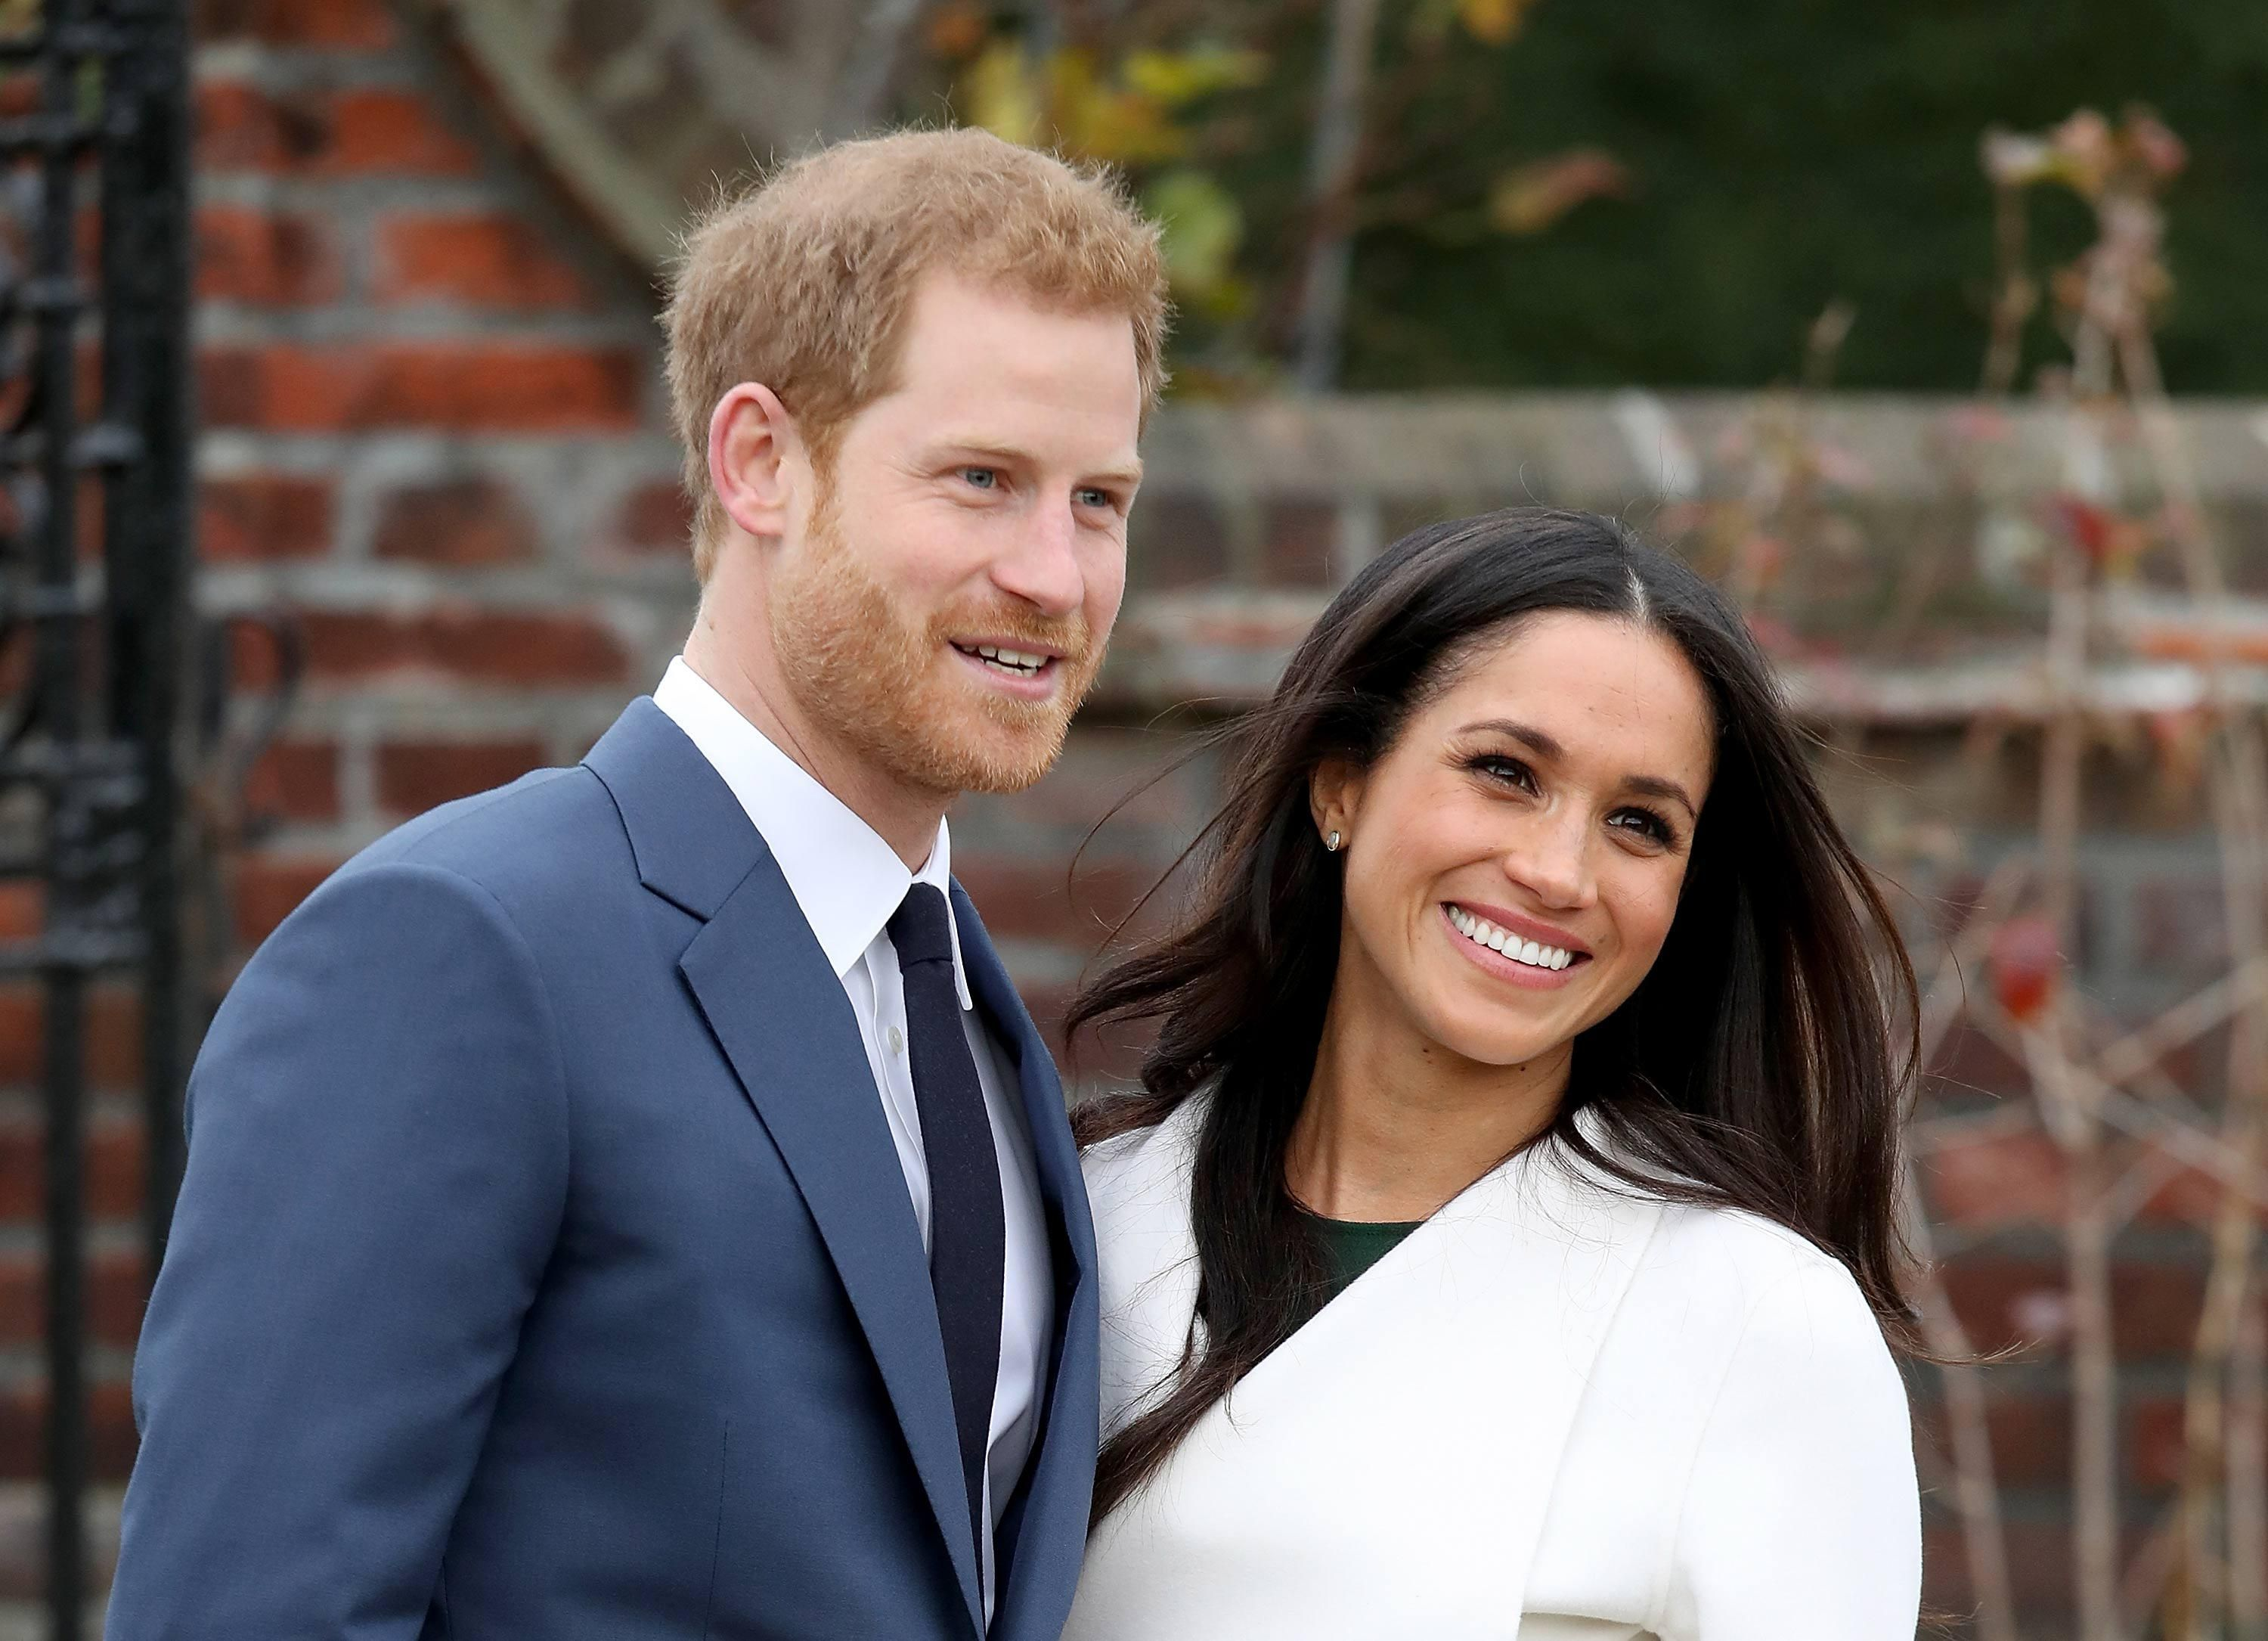 Harry and Meghan pose shortly after getting engaged